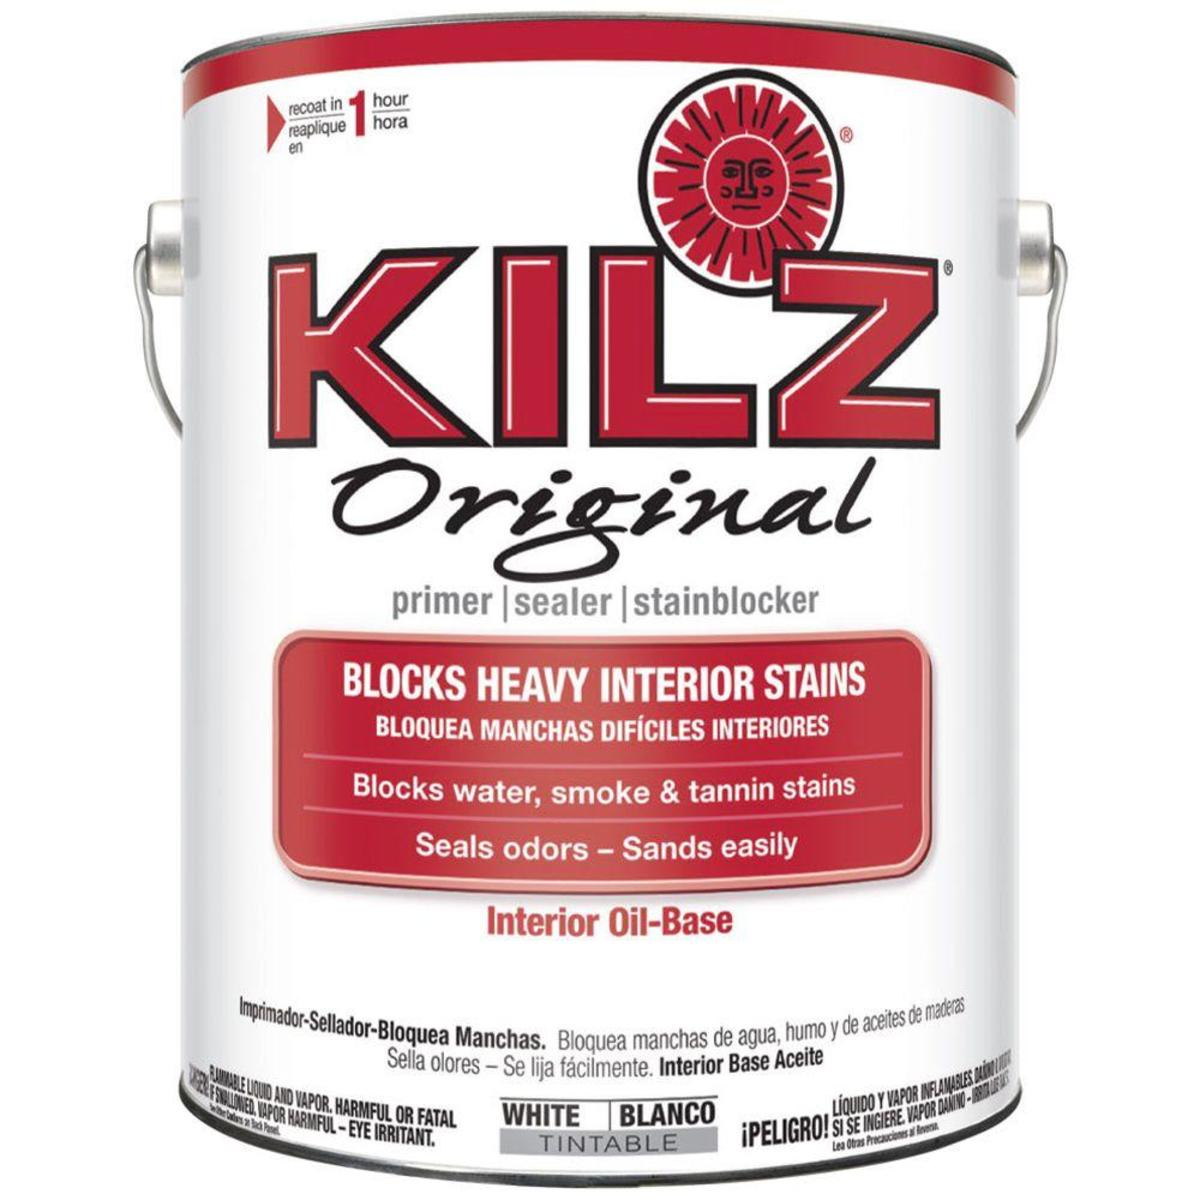 My Review of Kilz Original Oil-Based Primer